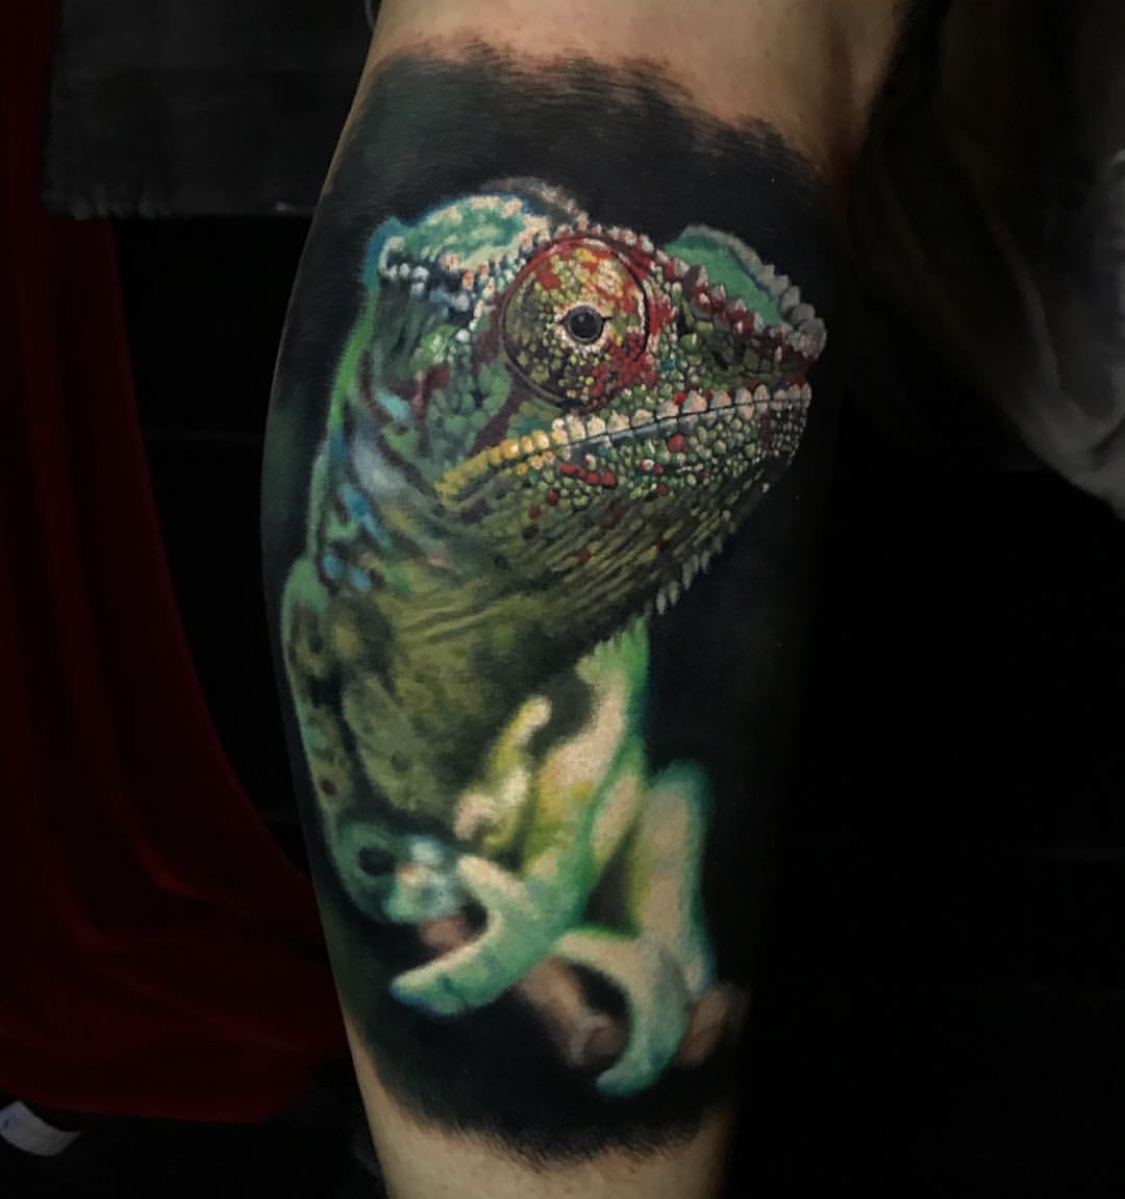 This chameleon tattoo is a perfect example of a macro photo used as a reference, making for a dramatic closeup appearance where the creature's face hovers in space.